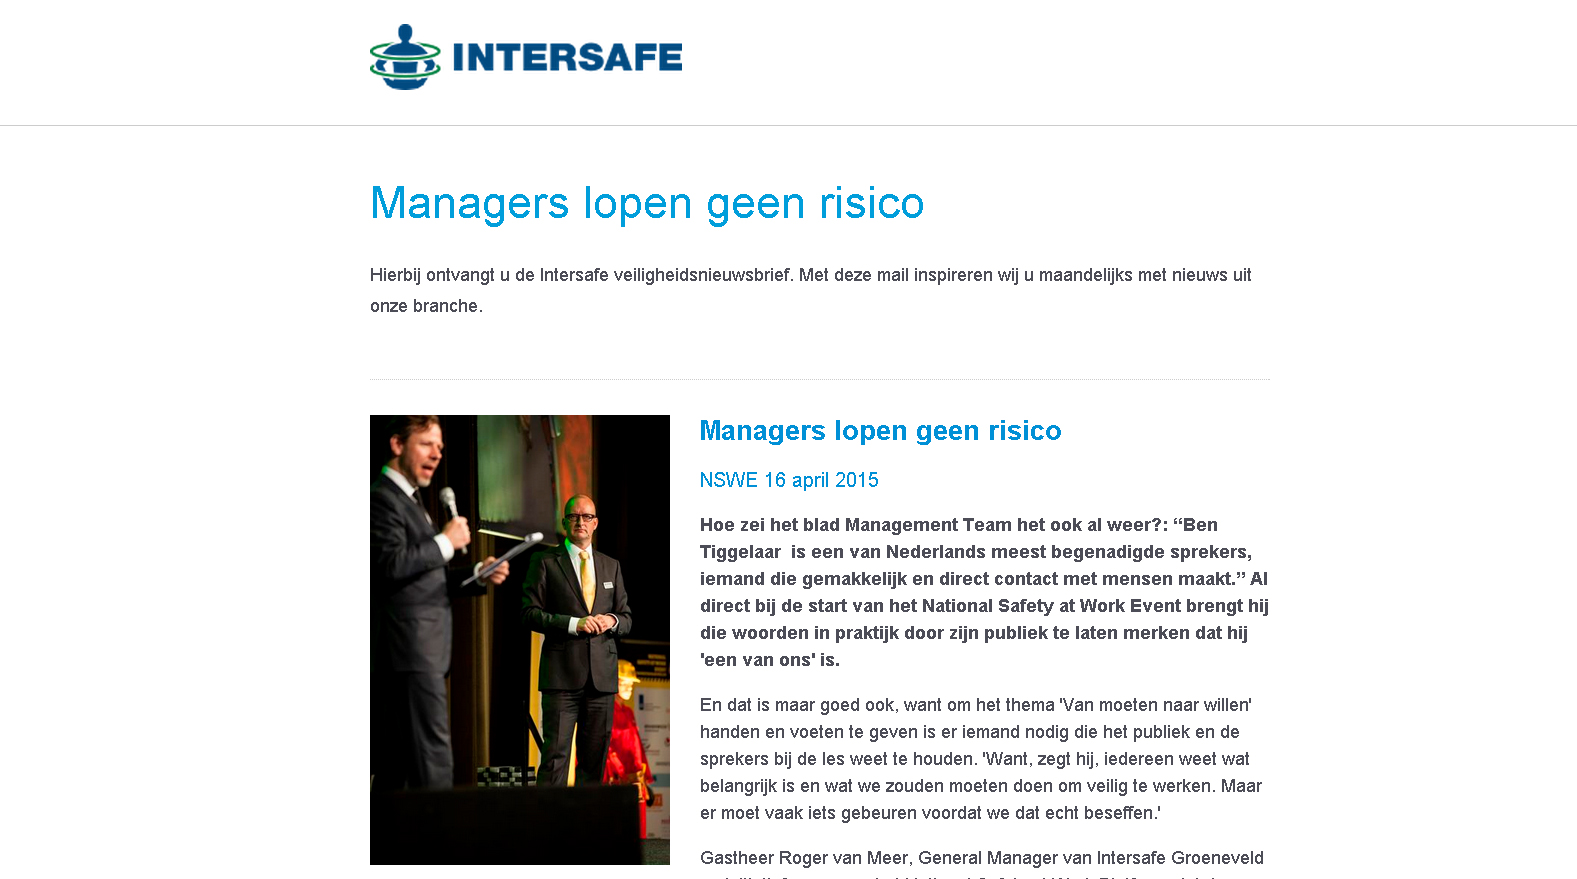 Managers lopen geen risico